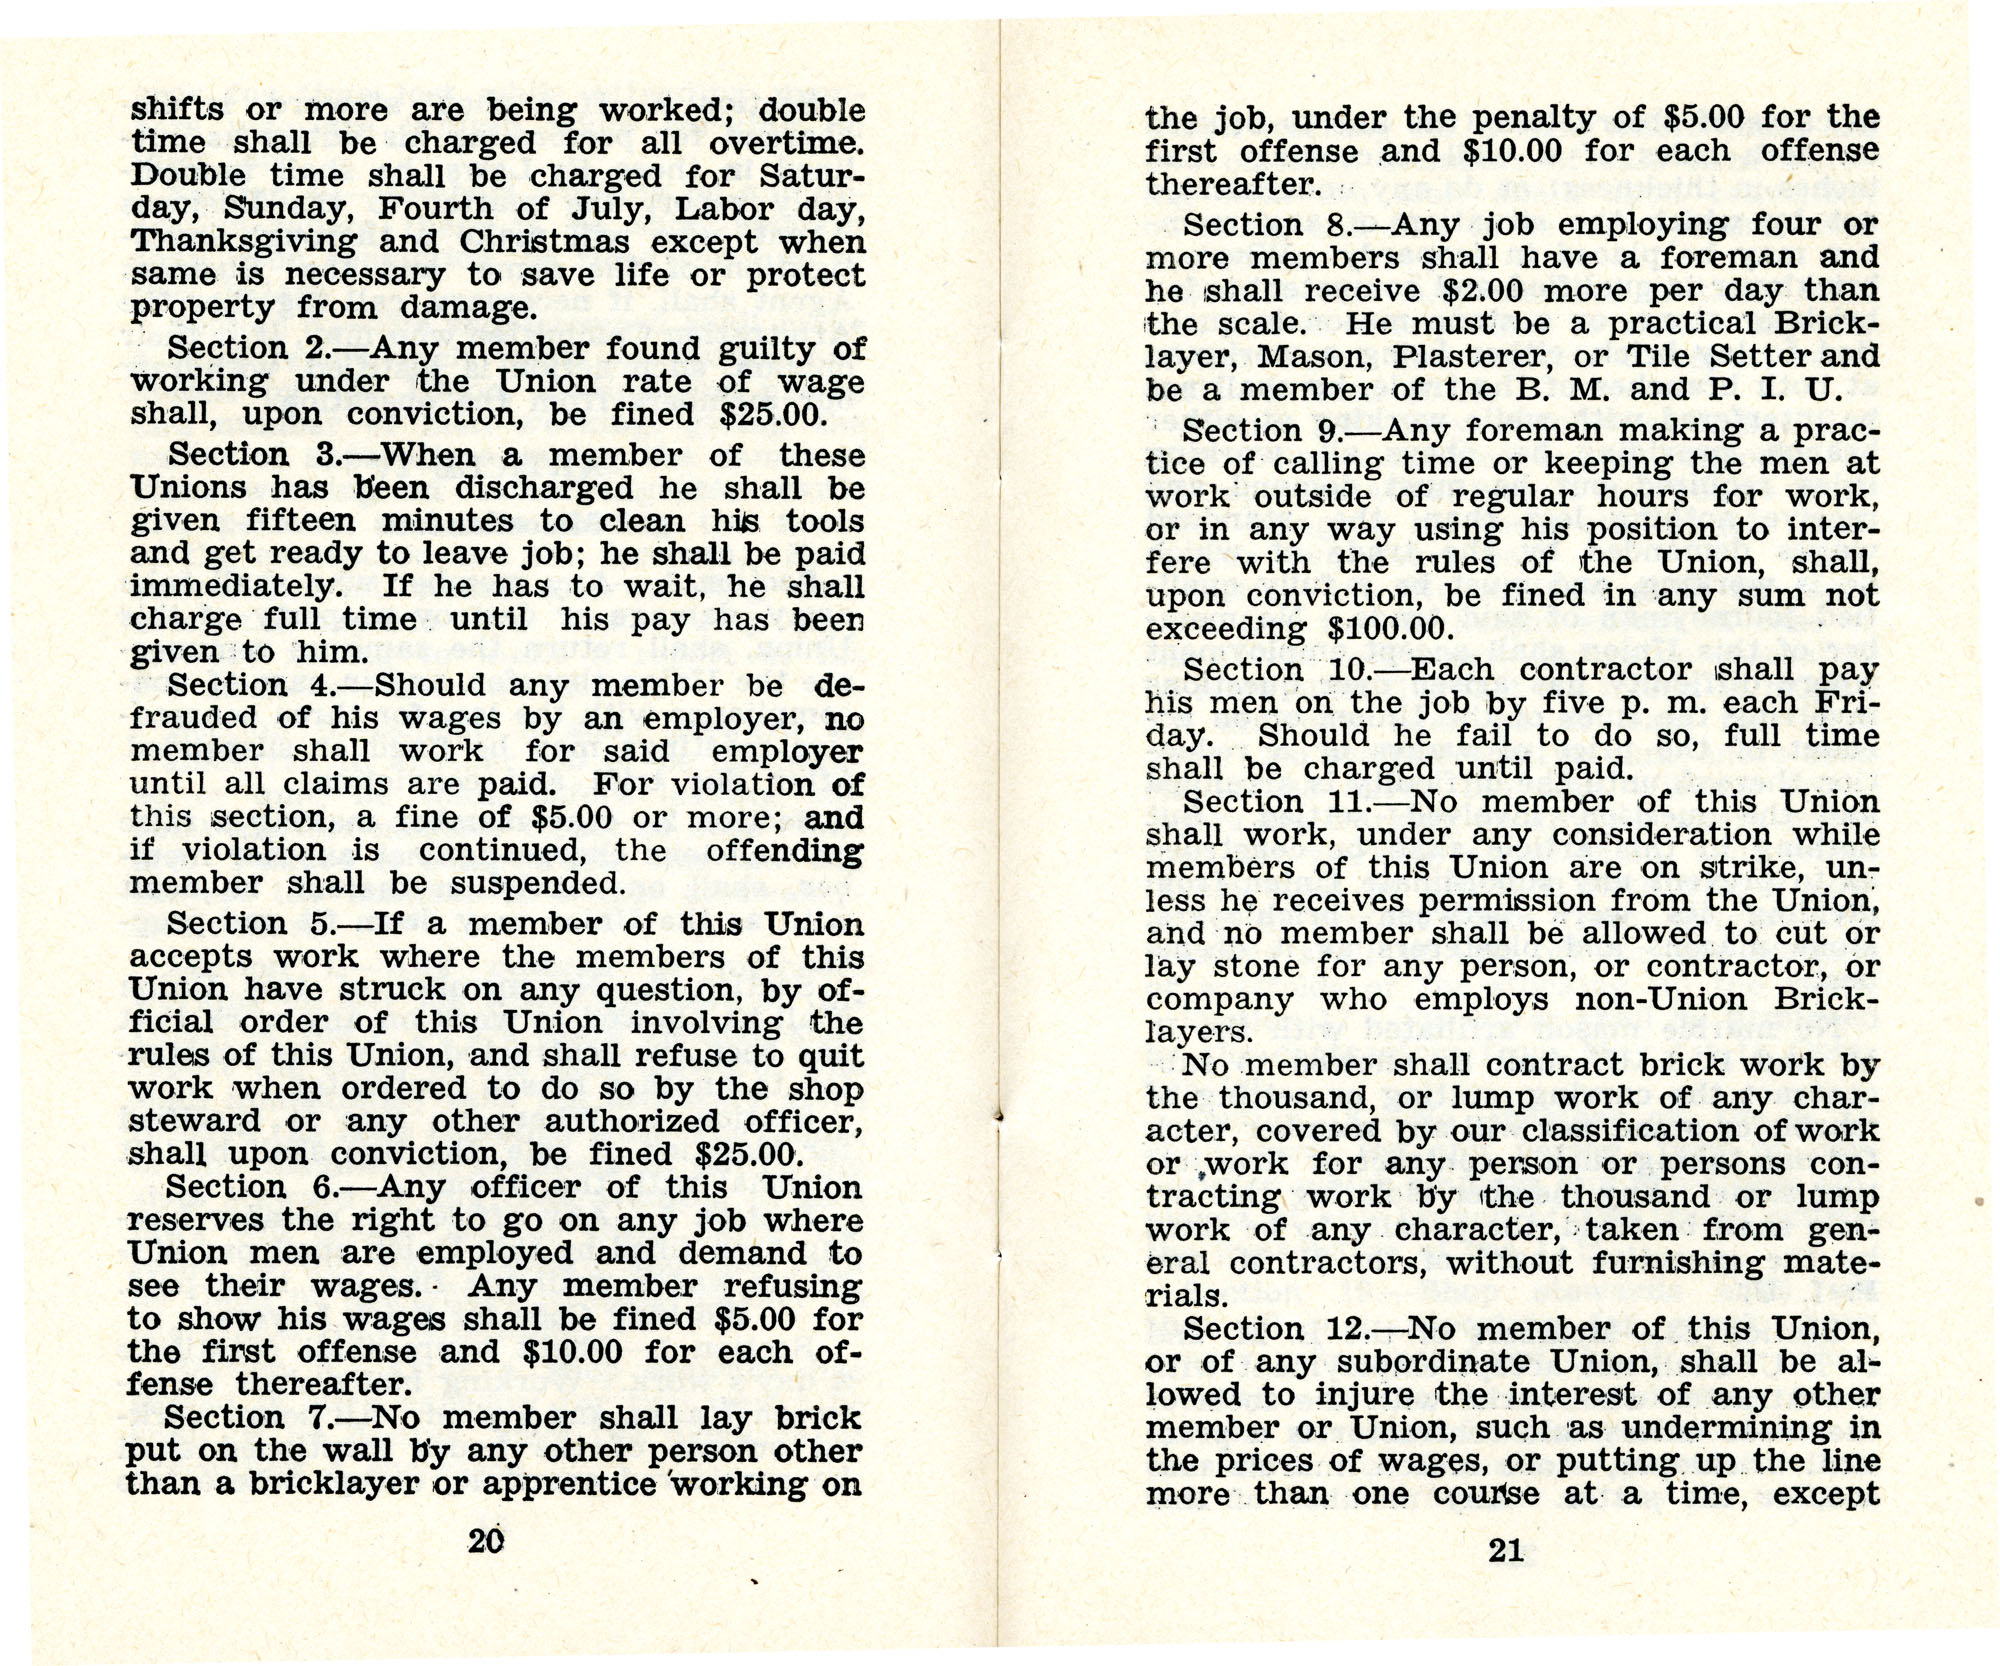 Constitution and by-laws of unions no.1 and 10, Page 11